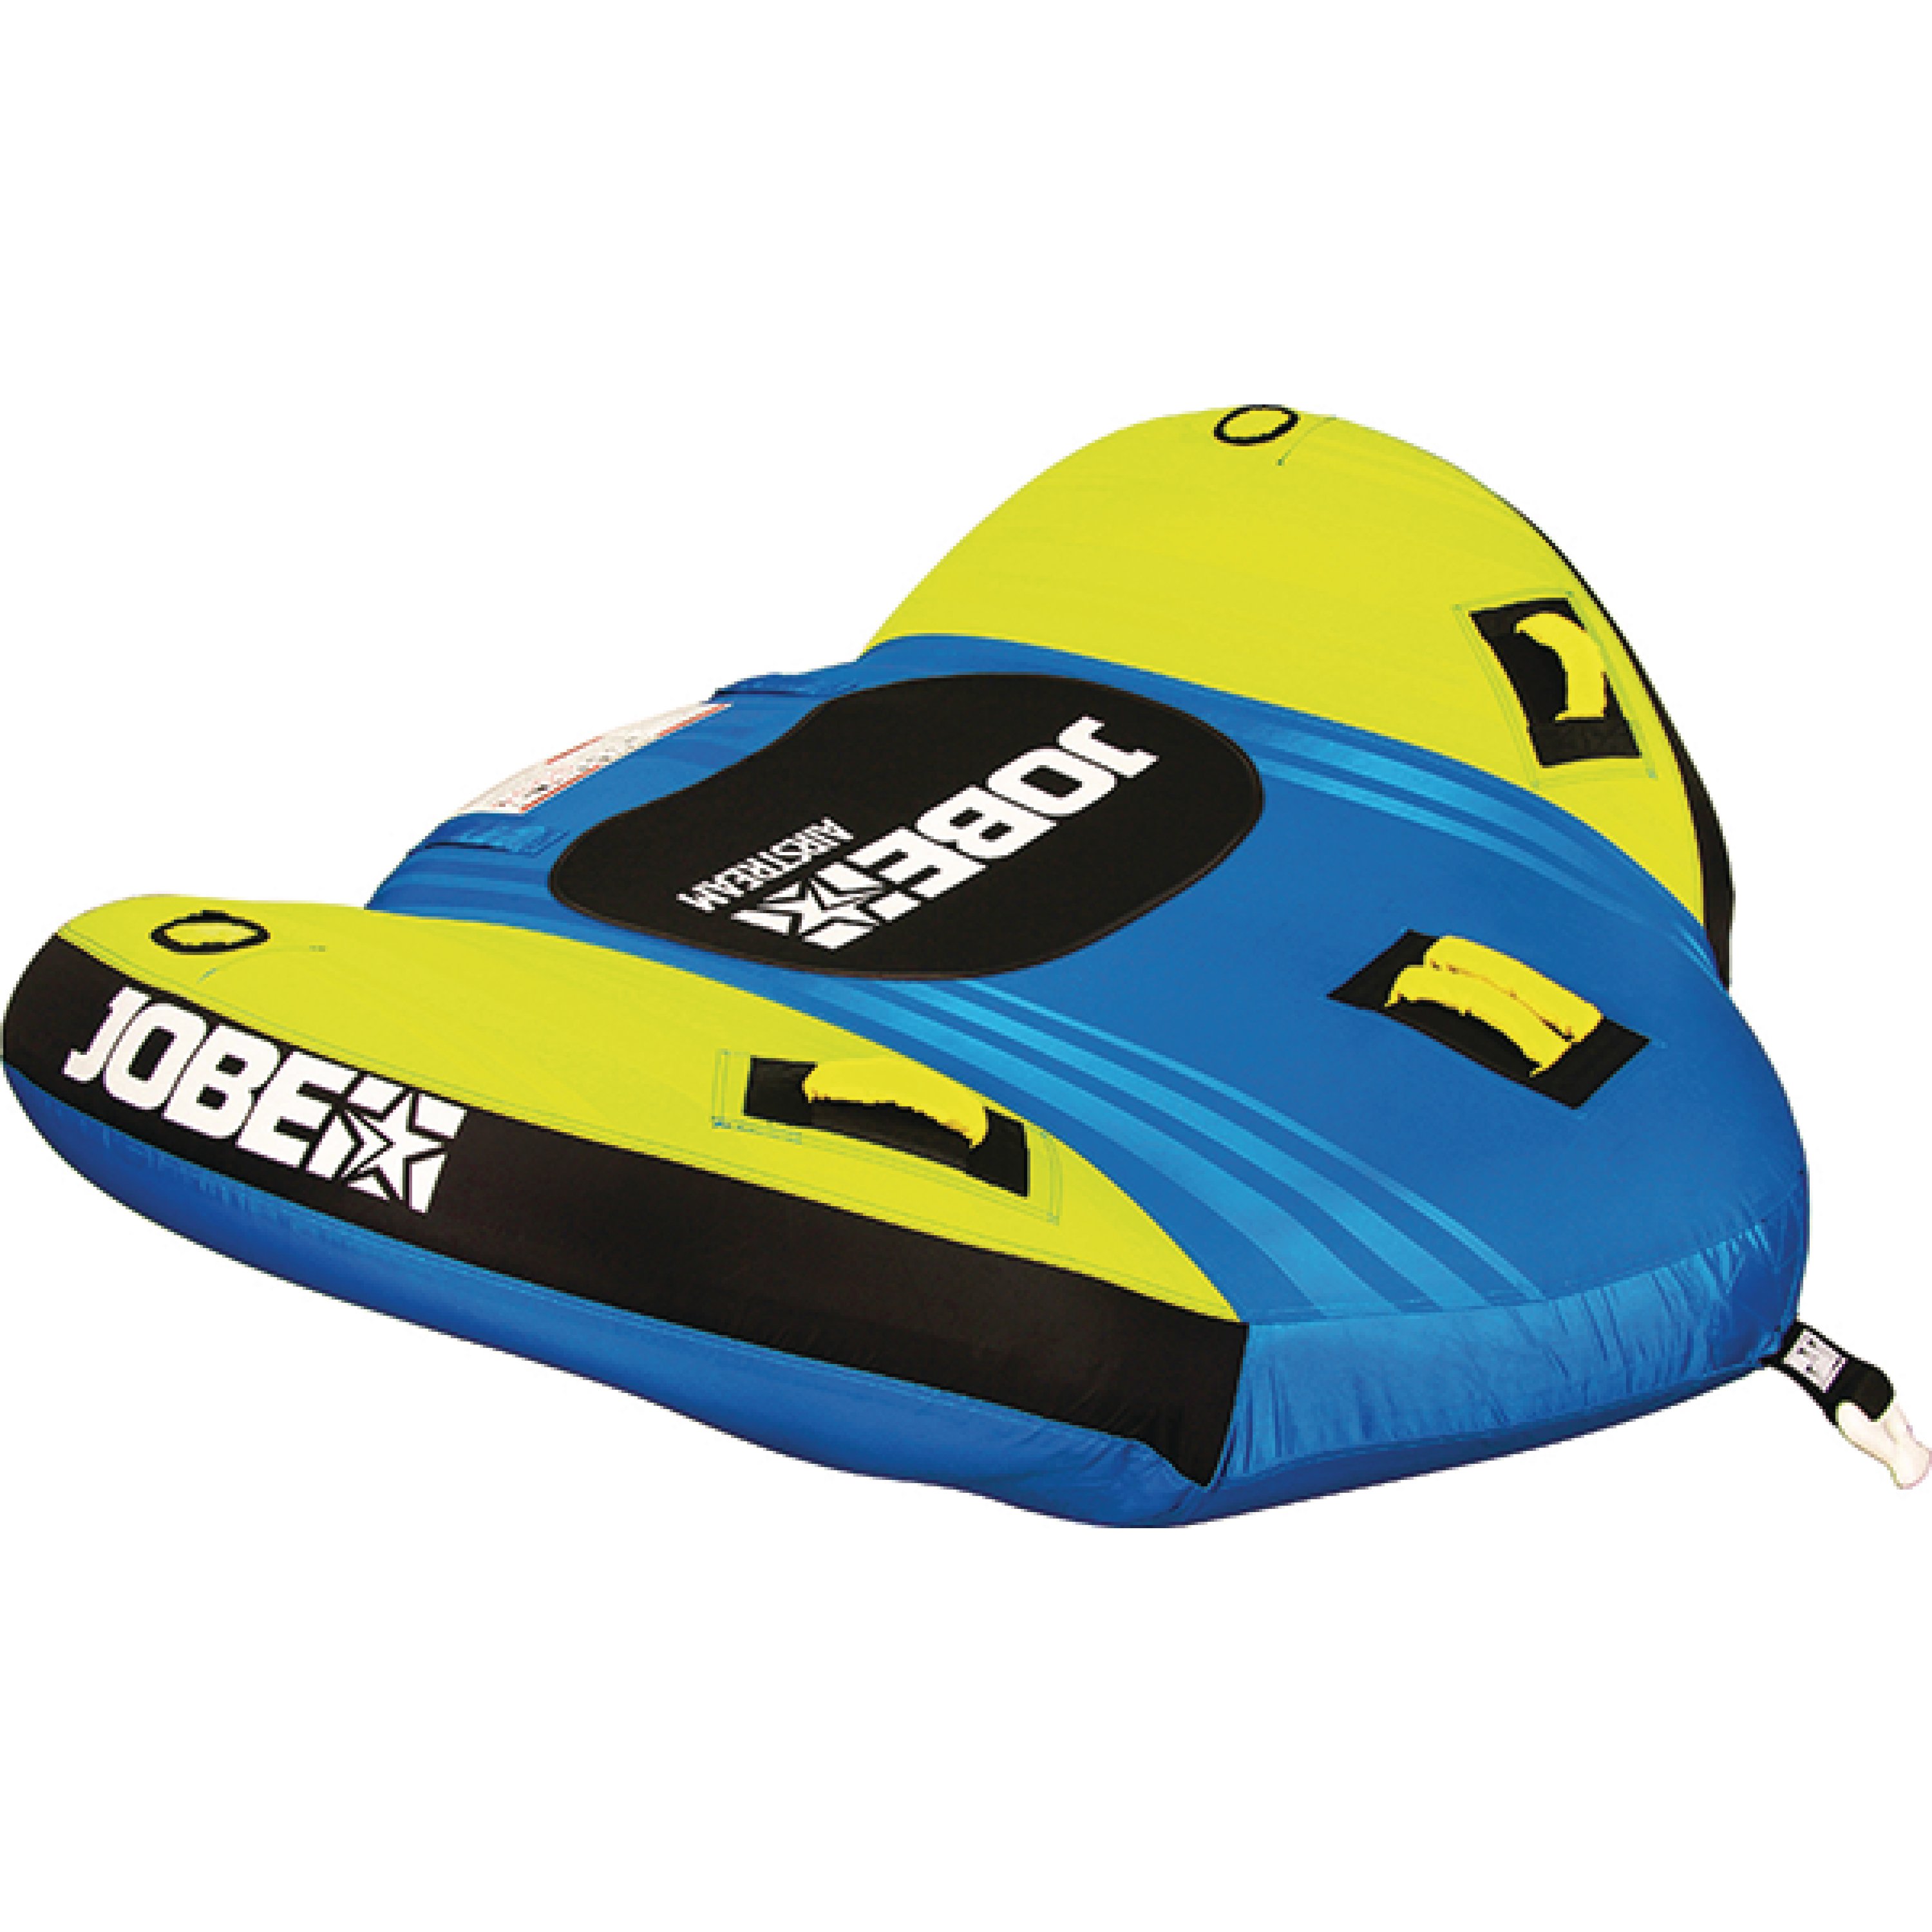 Jobe Airstream Blue & Yellow Winged Inflatable Towable